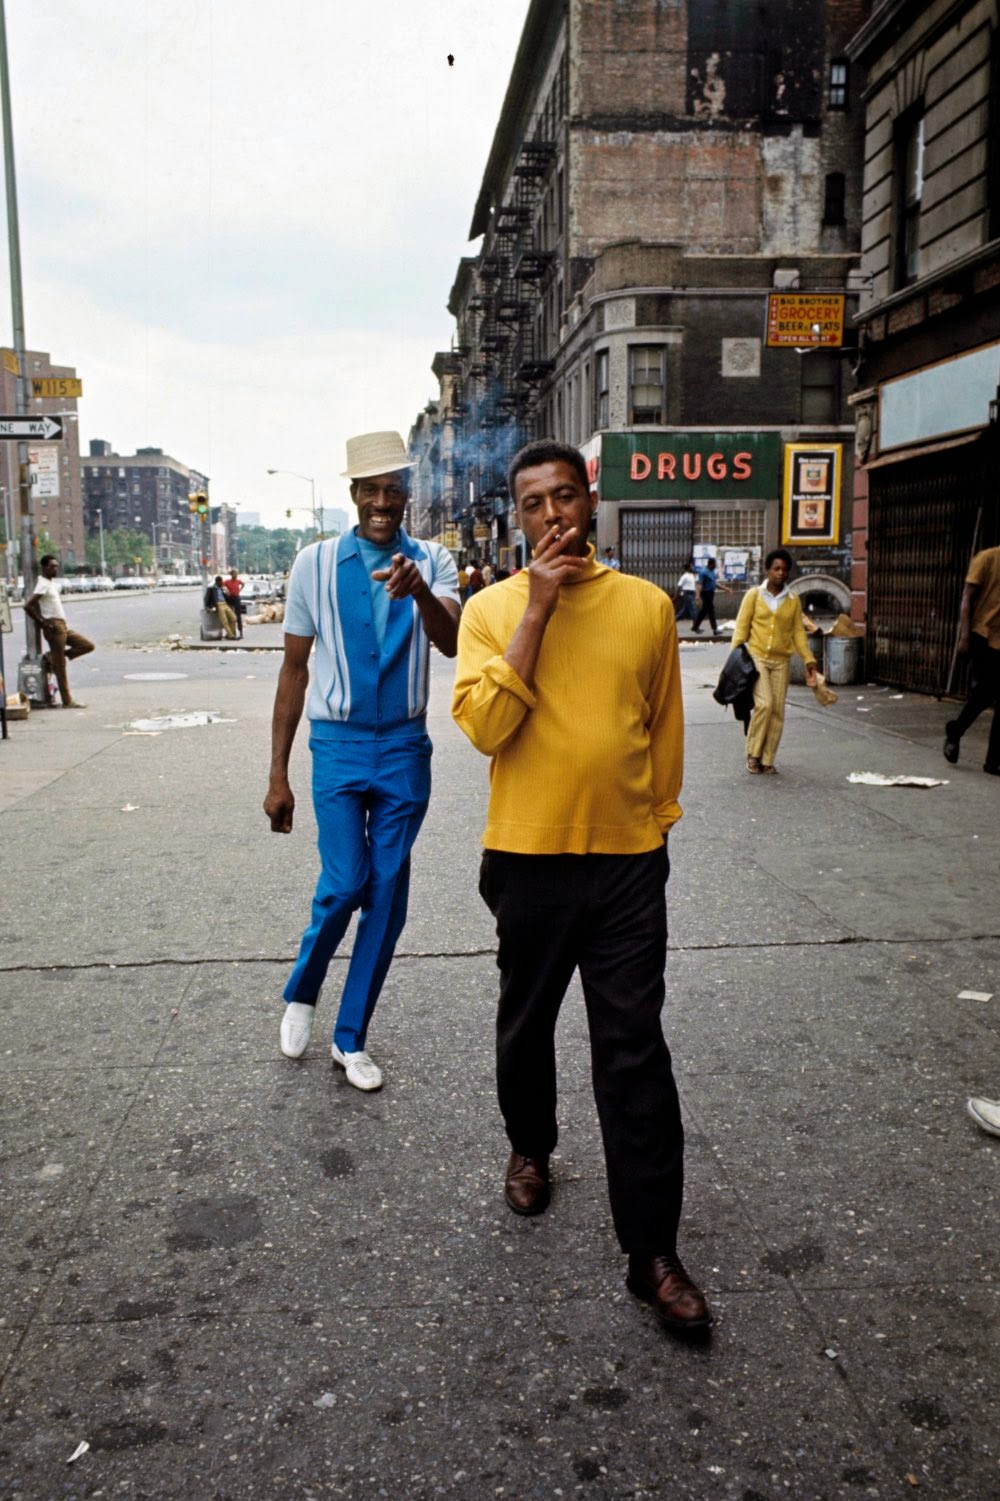 Photographs of The Lower East Side During the 1970s - Flashbak